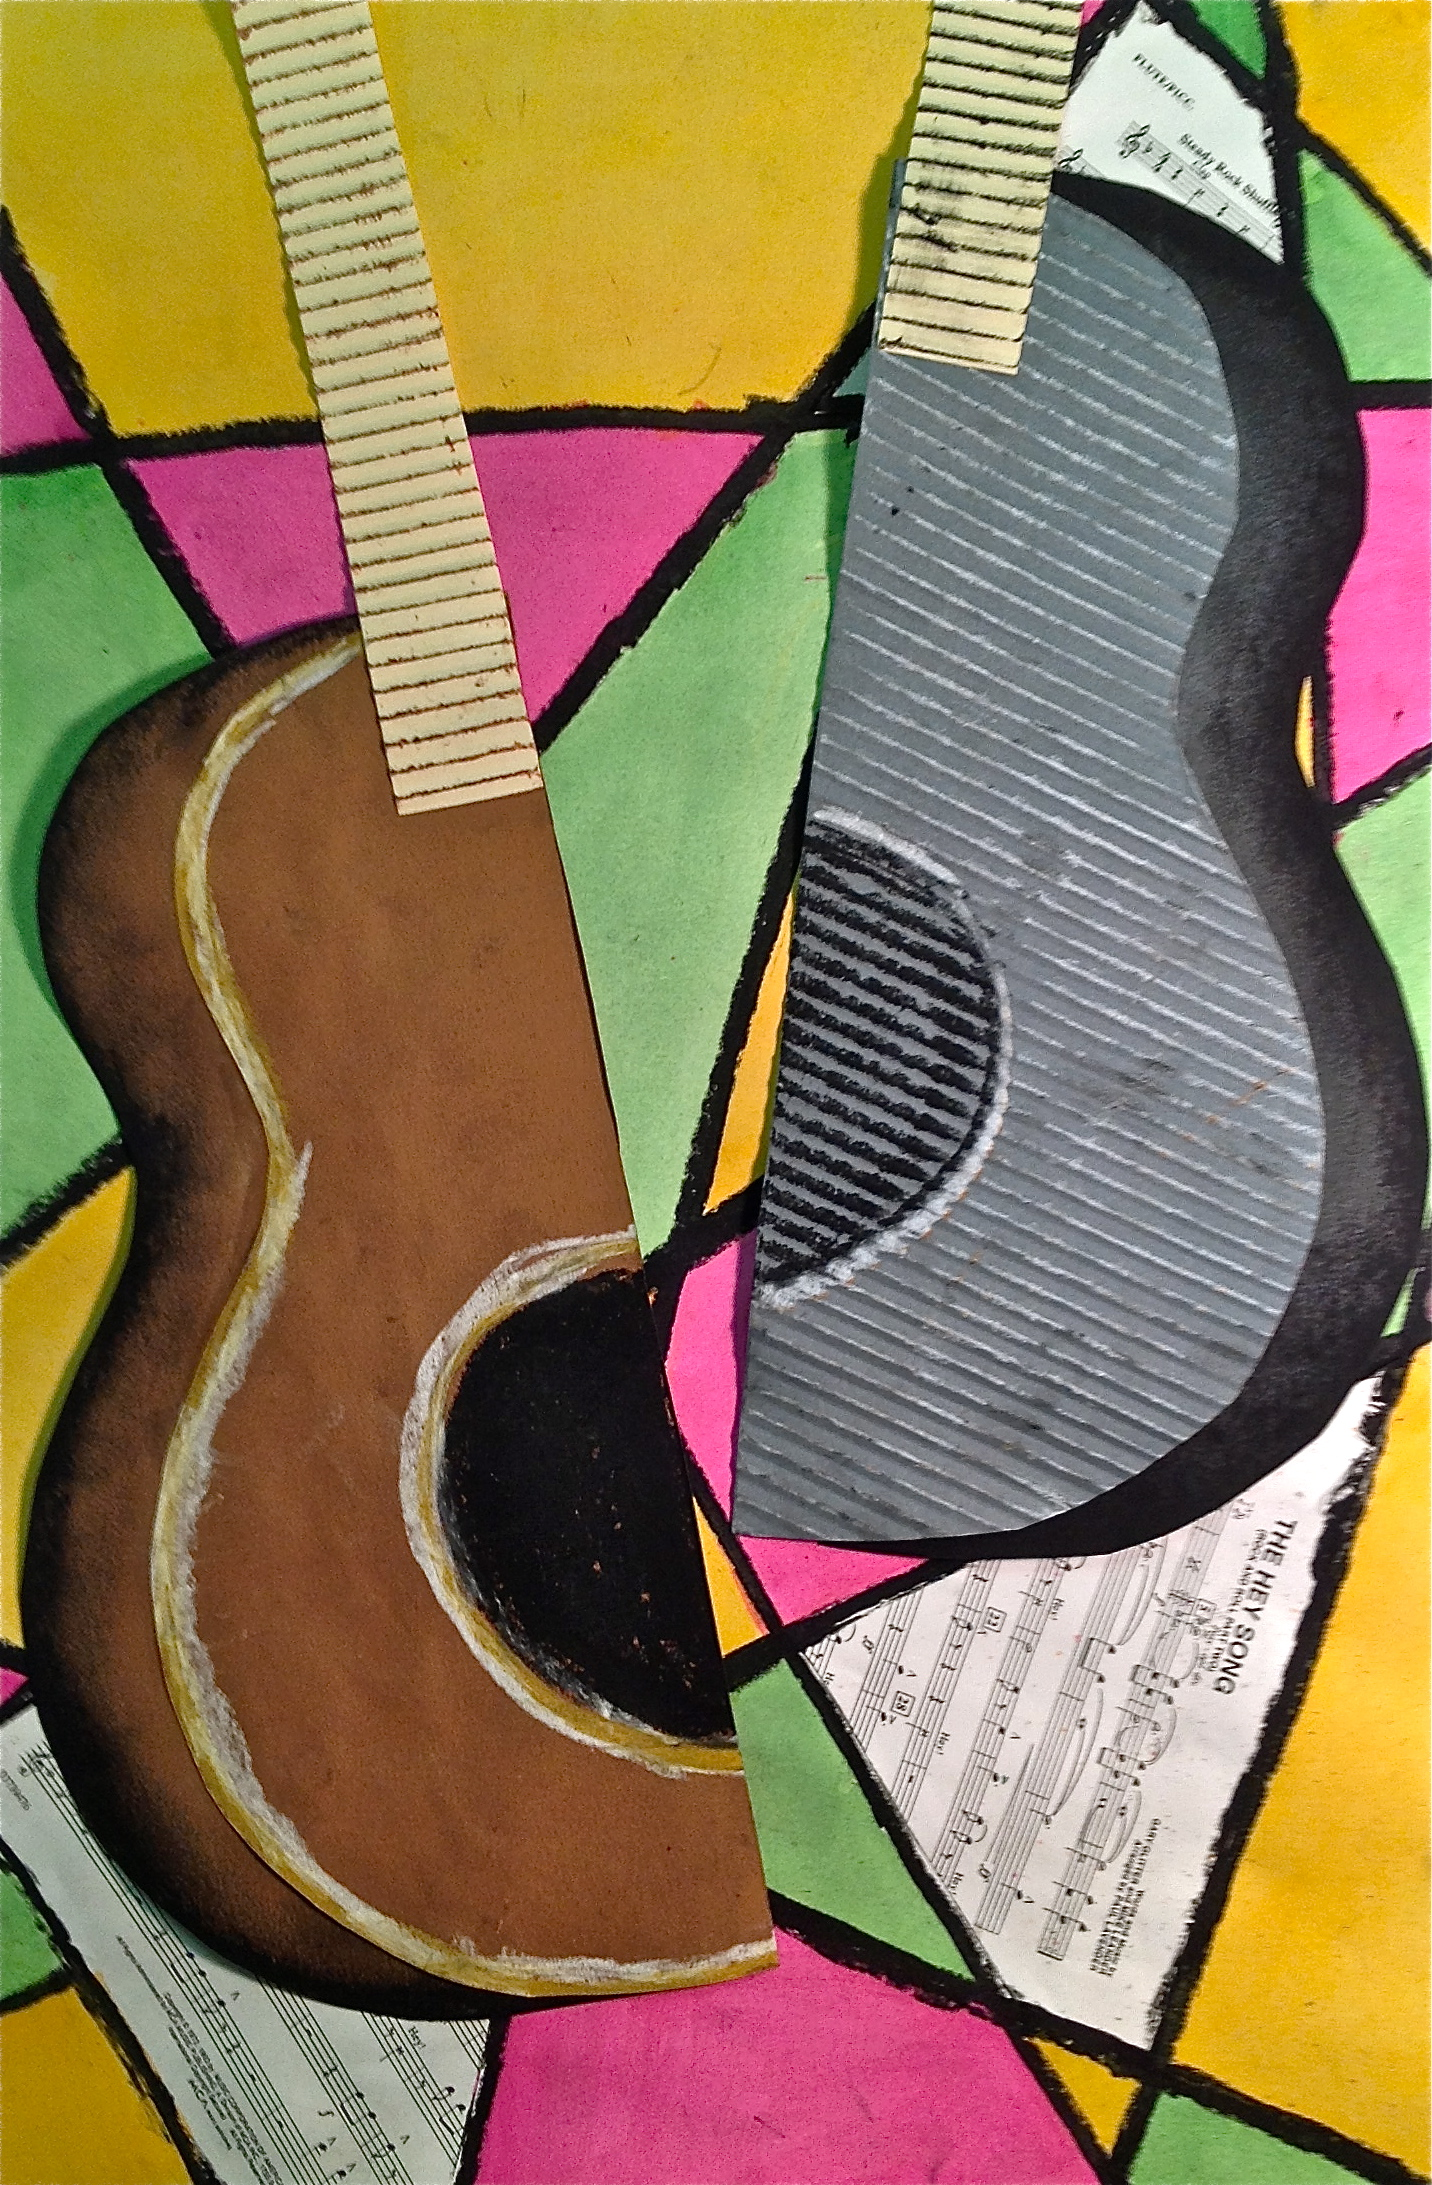 Abstract Art Guitar Or Music Instrument Mixed Media Lesson Create Art With Me